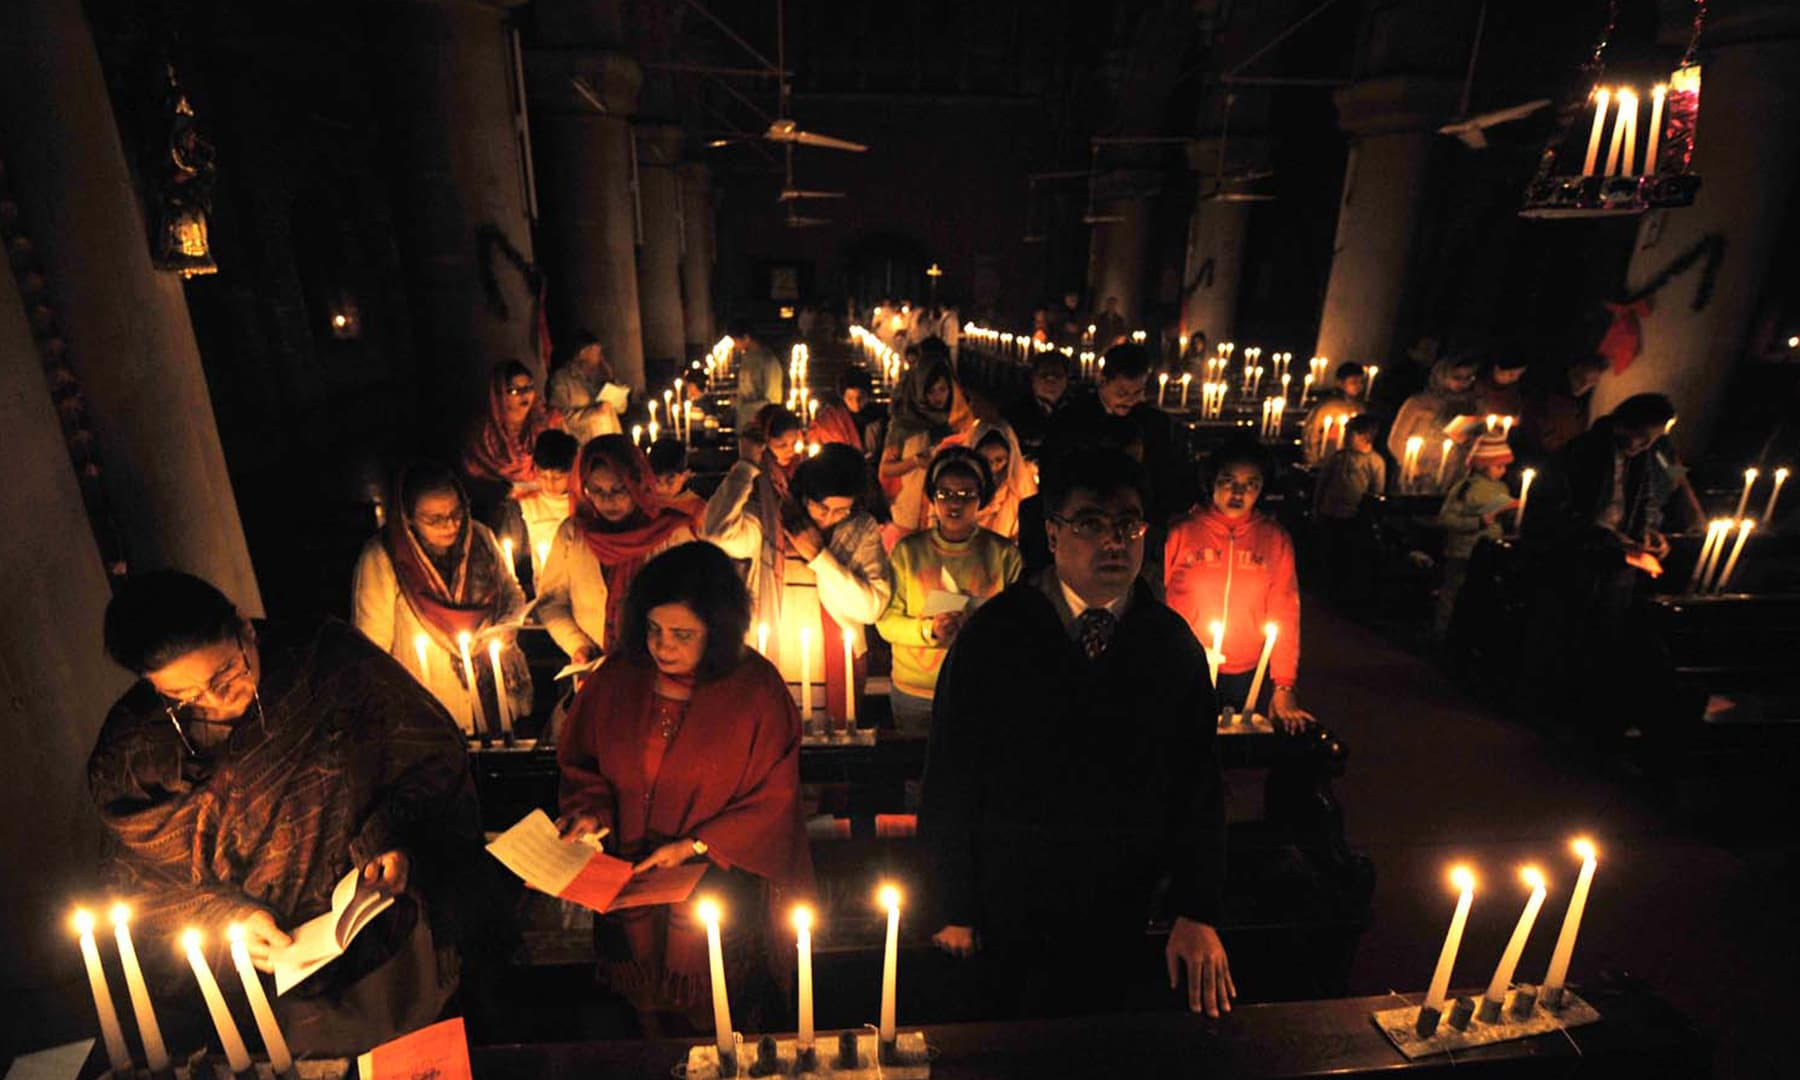 Churches across Pakistan are candlelit in celebration of Christmas | M Arif, White Star